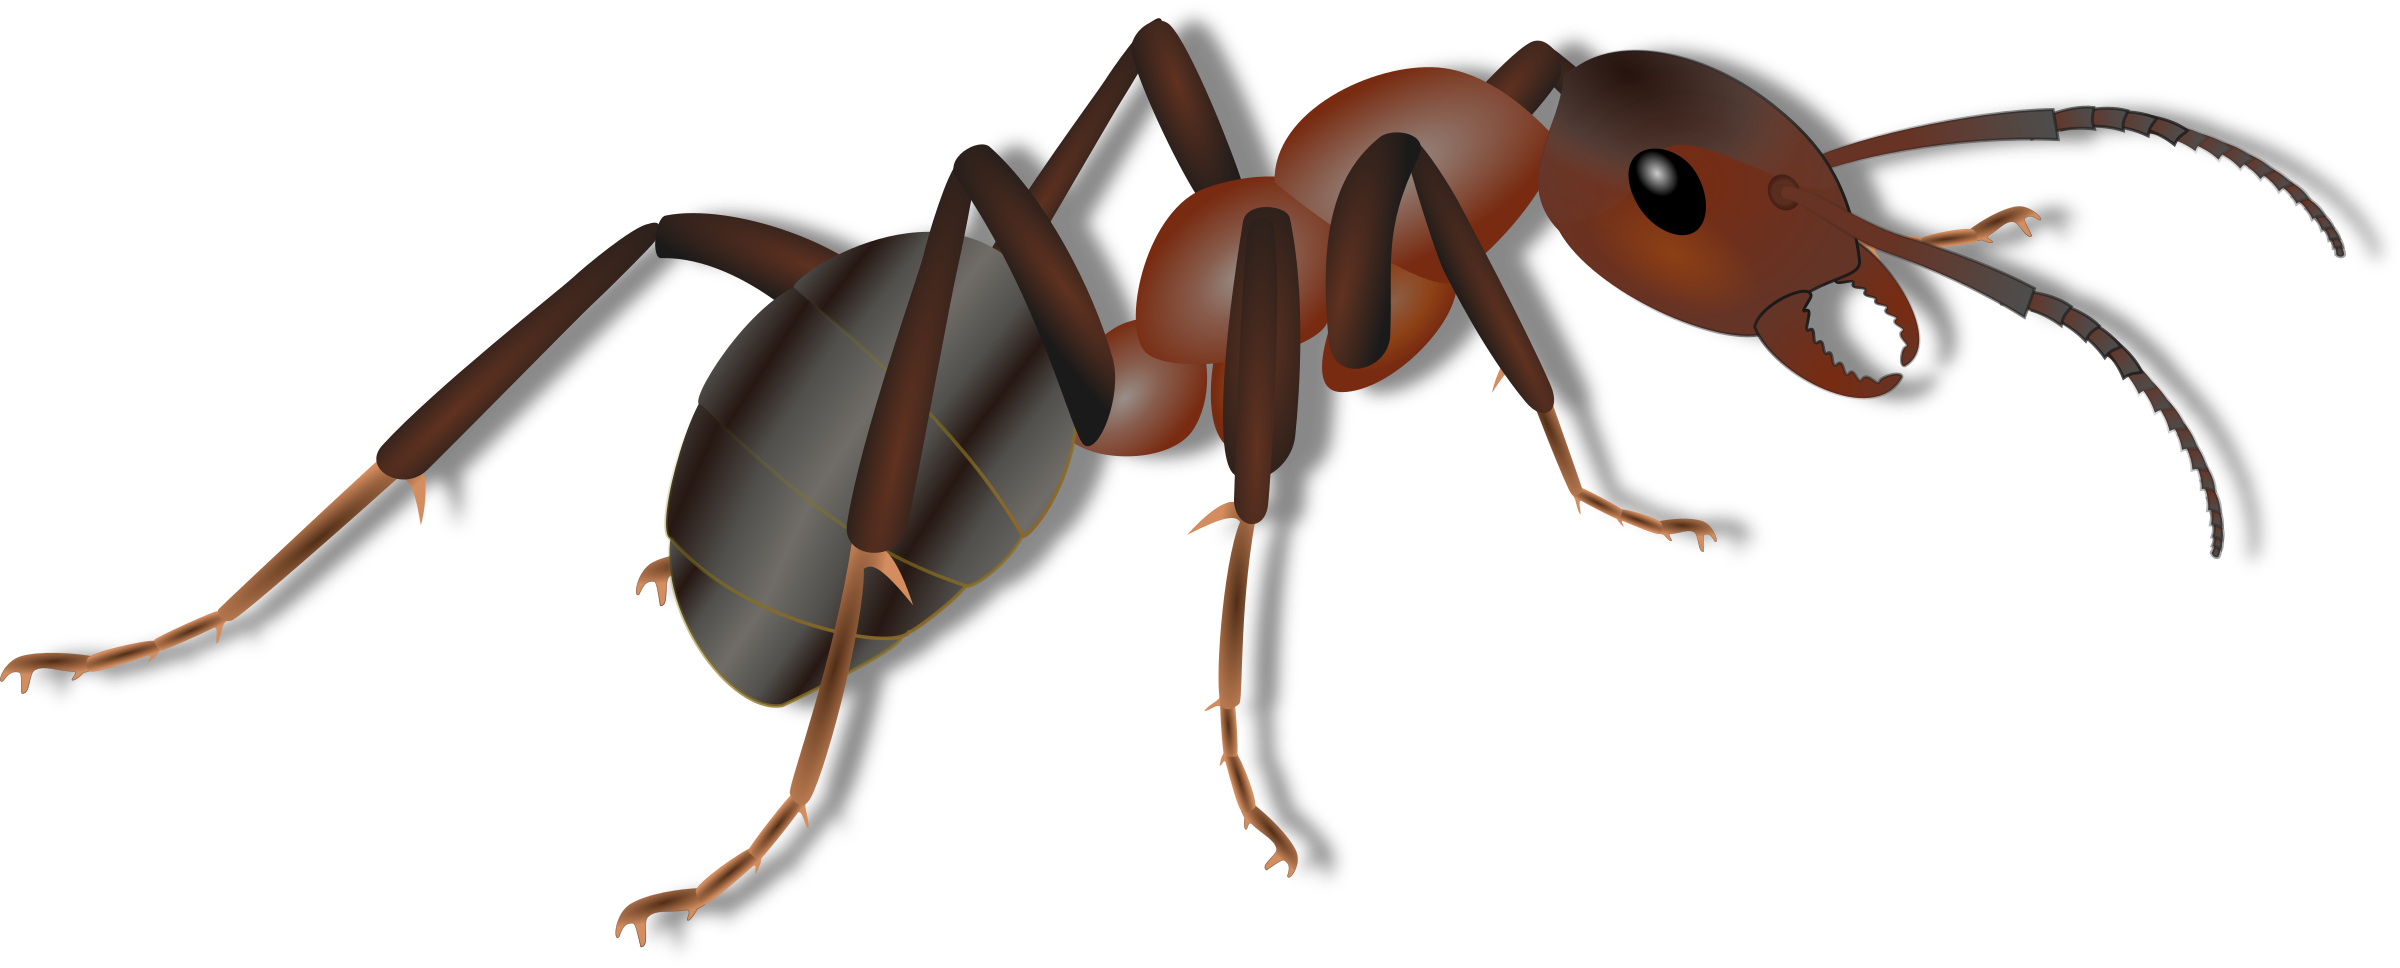 Ant clip art png. Ameise icons free and